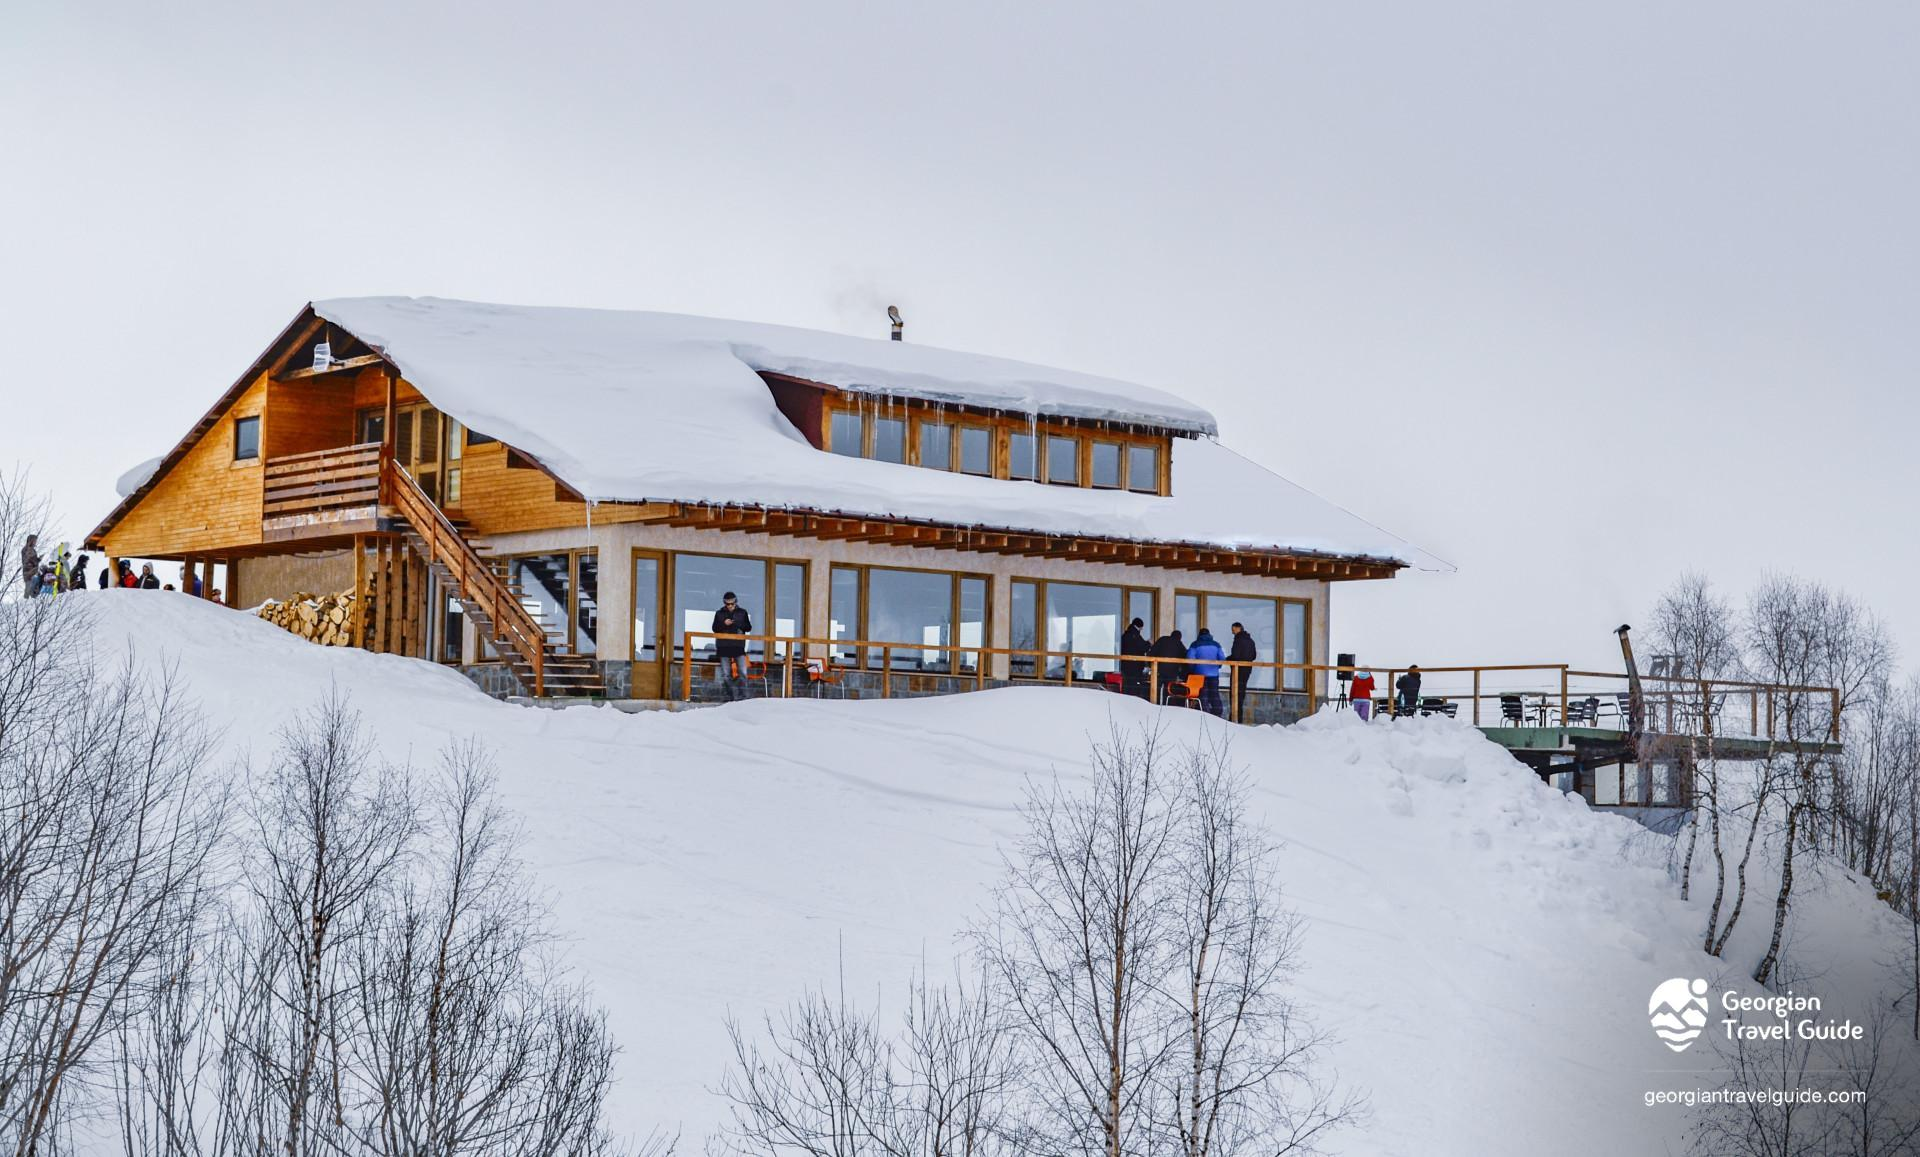 Cafe zuruldi hatsvali ski resort